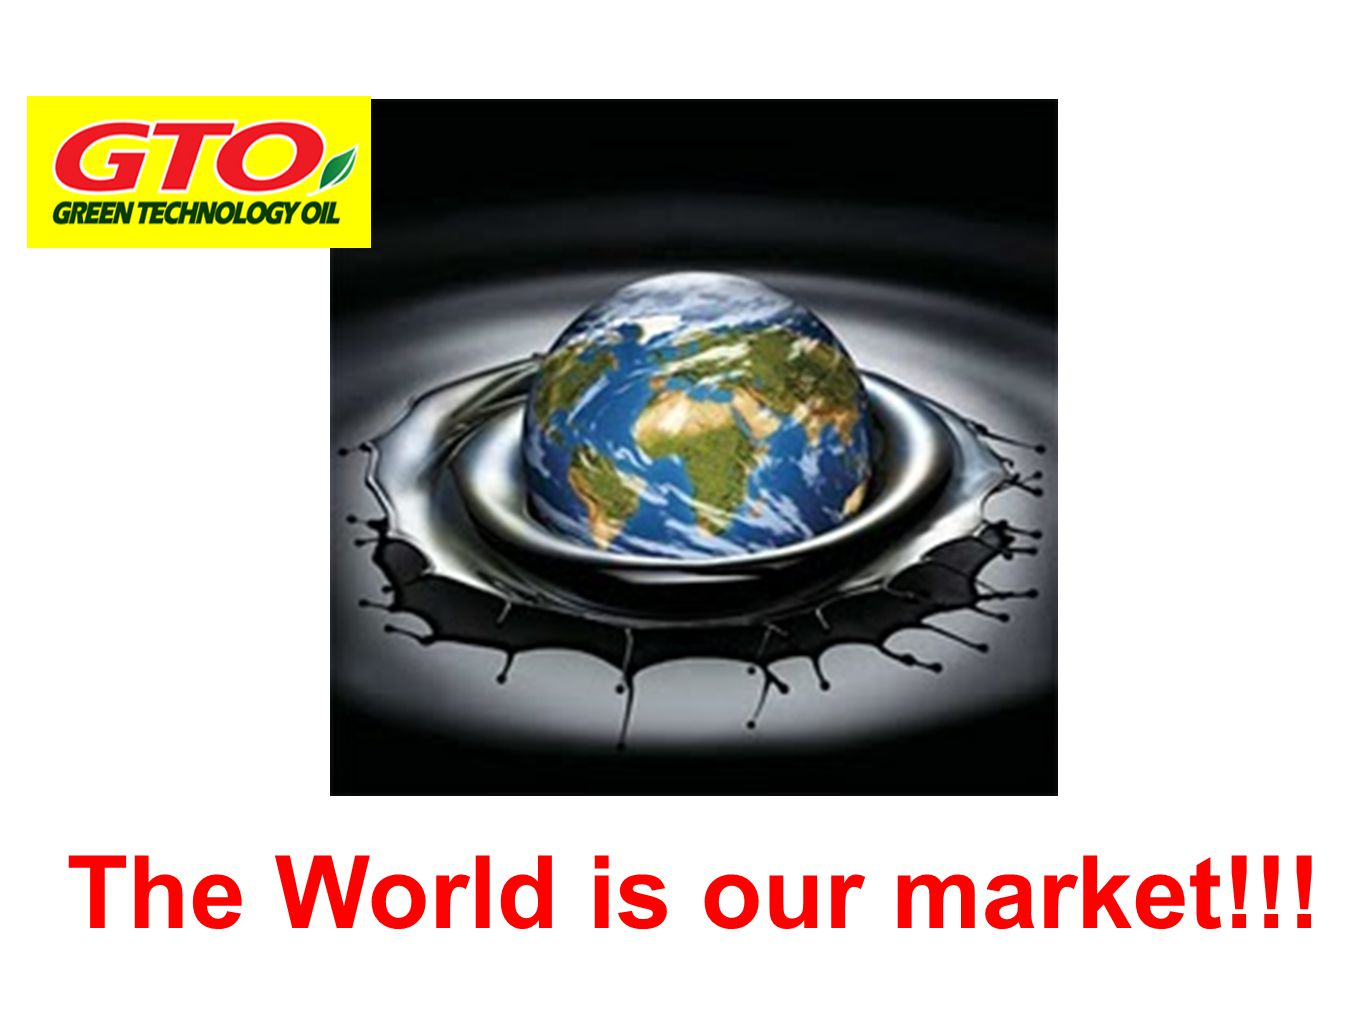 The World is our market!!!